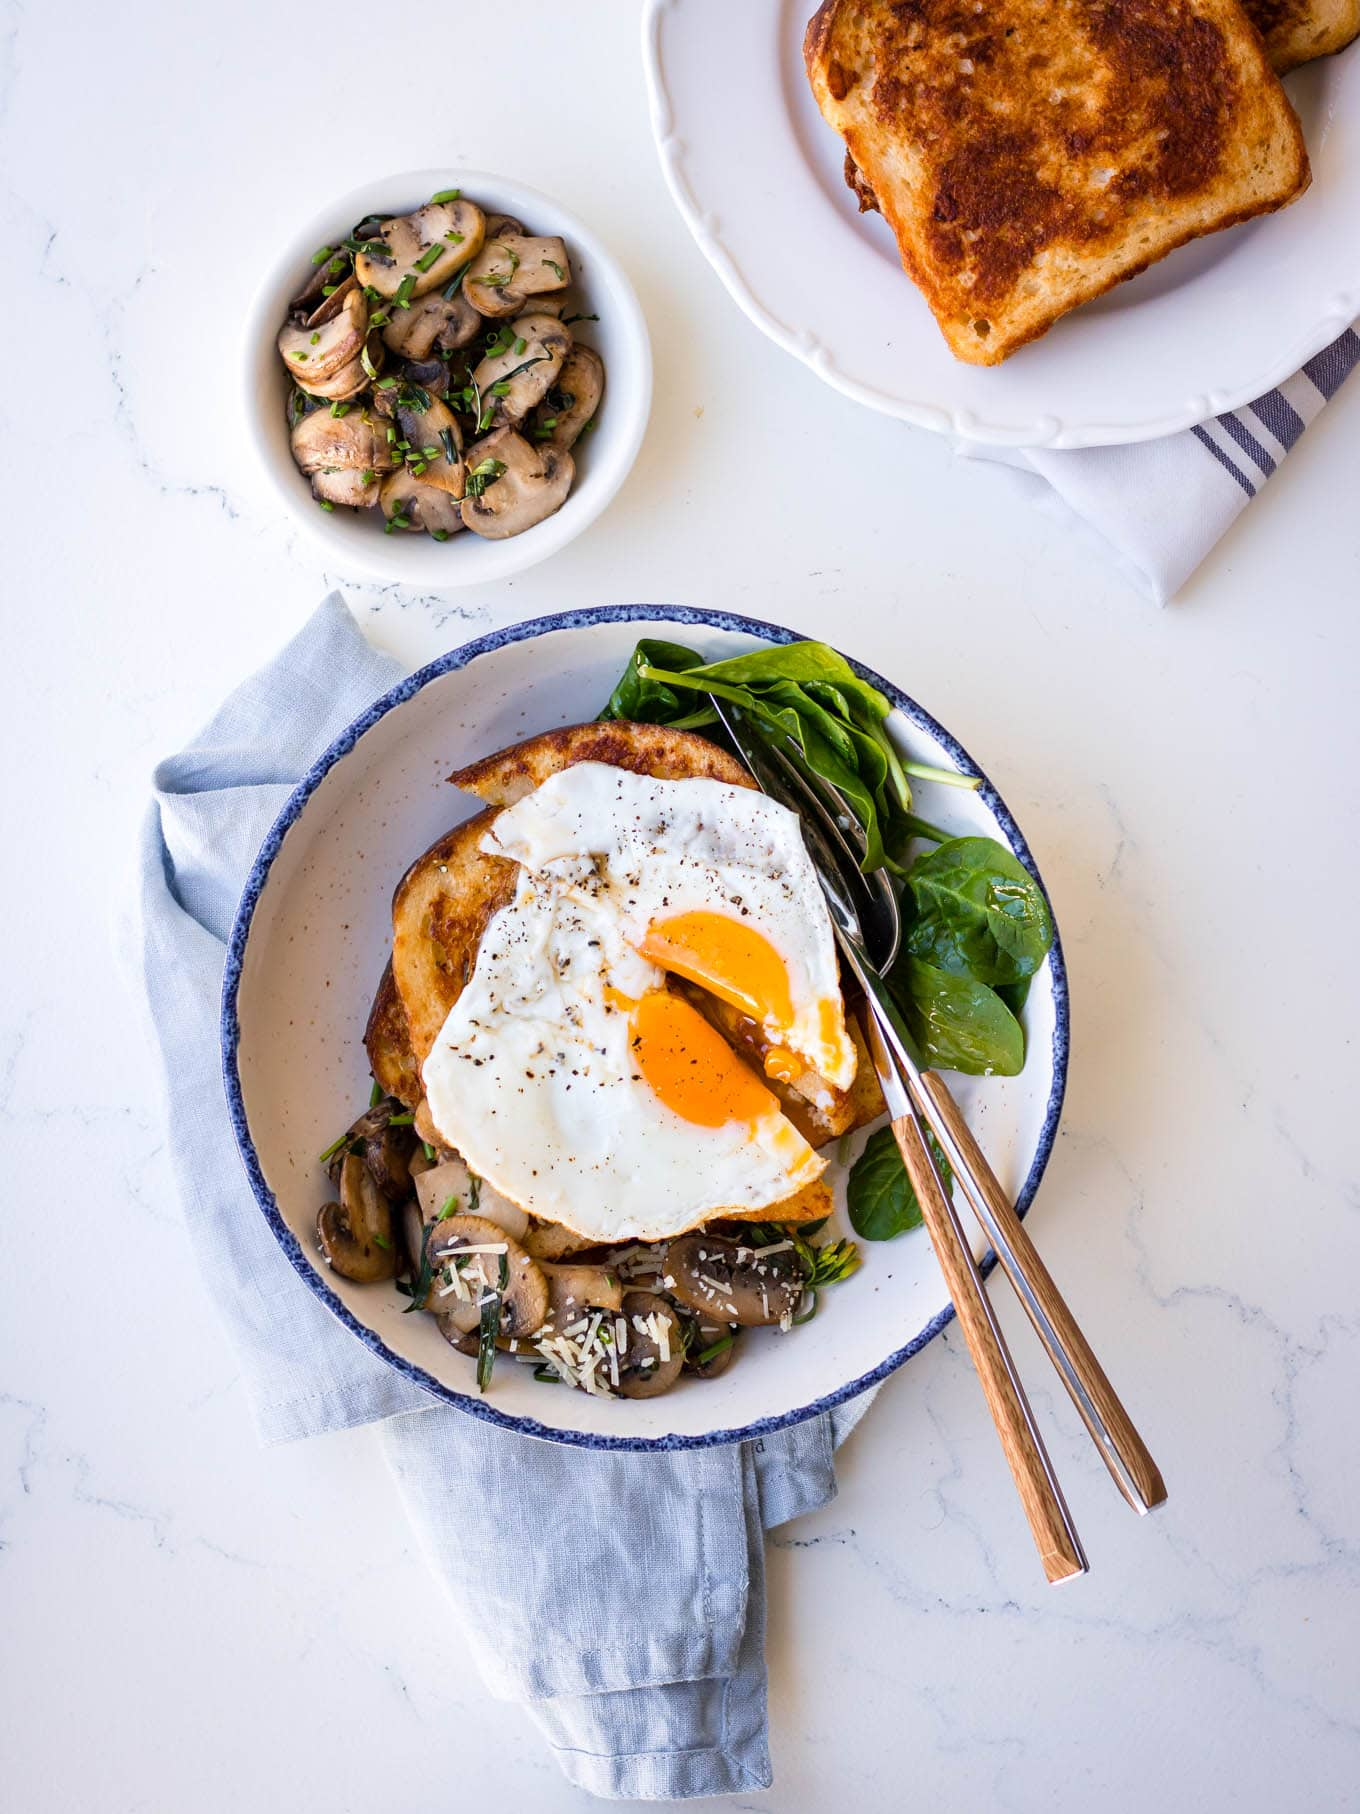 Savoury french toast with mushrooms, parmesan and a fried egg on top